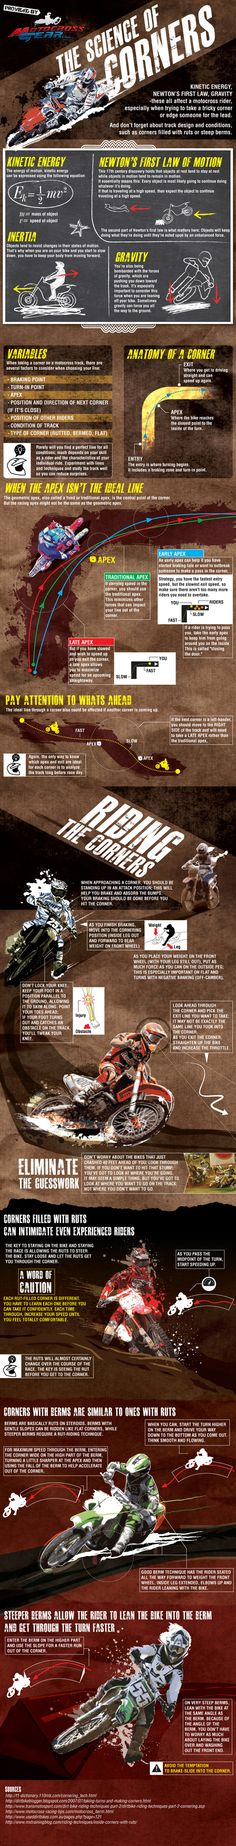 Since the beginning of racing, riders have been faced with many choices on the track. The fastest rider is often the one who chooses the best lines on #motor #infographics